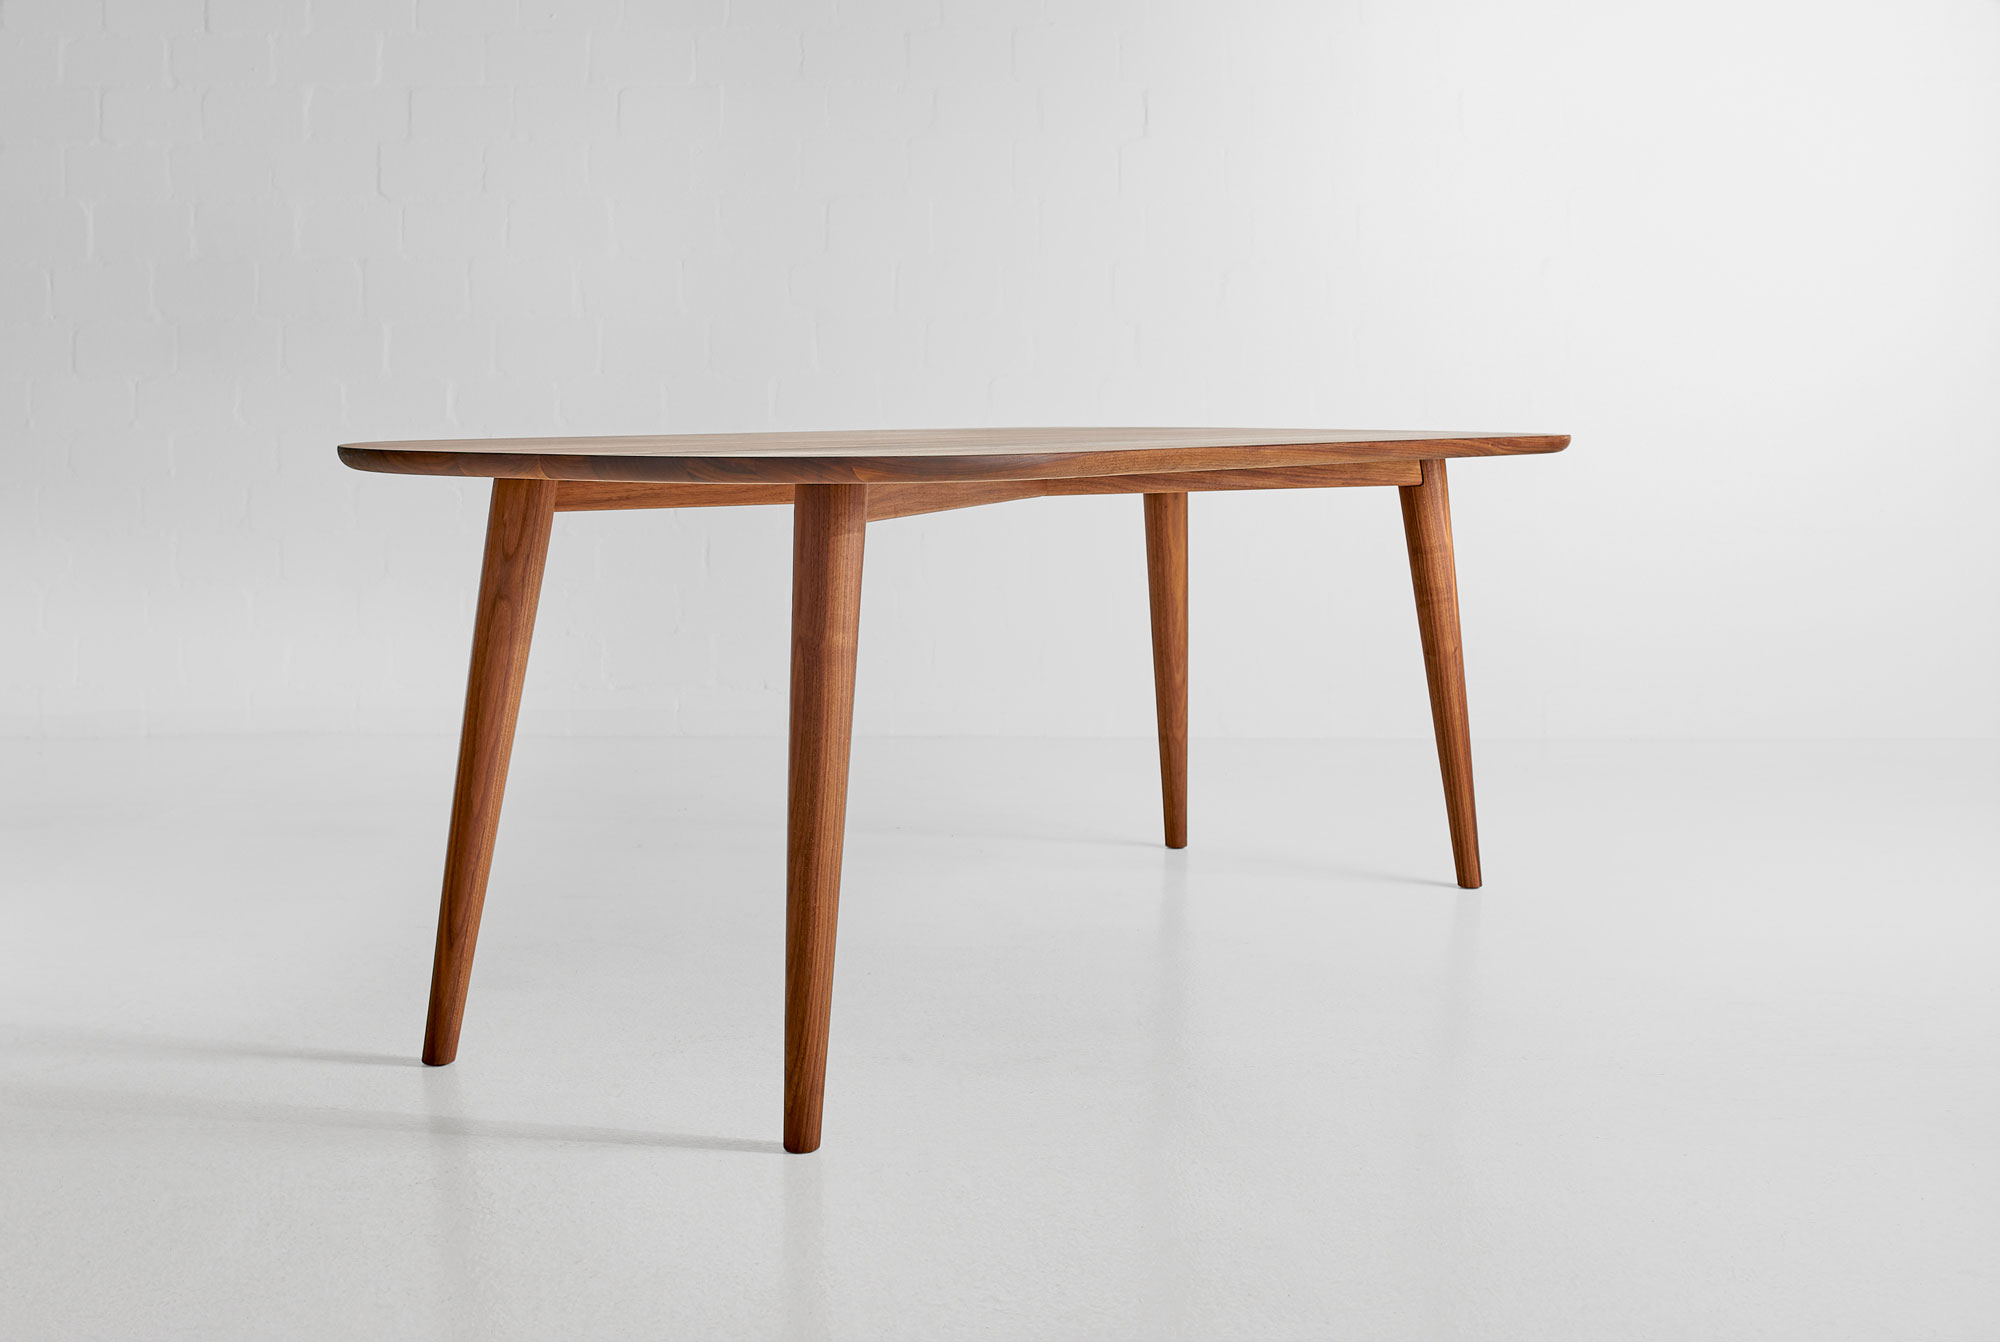 Oval Dining Table AMBIO A custom made in solid wood by vitamin design